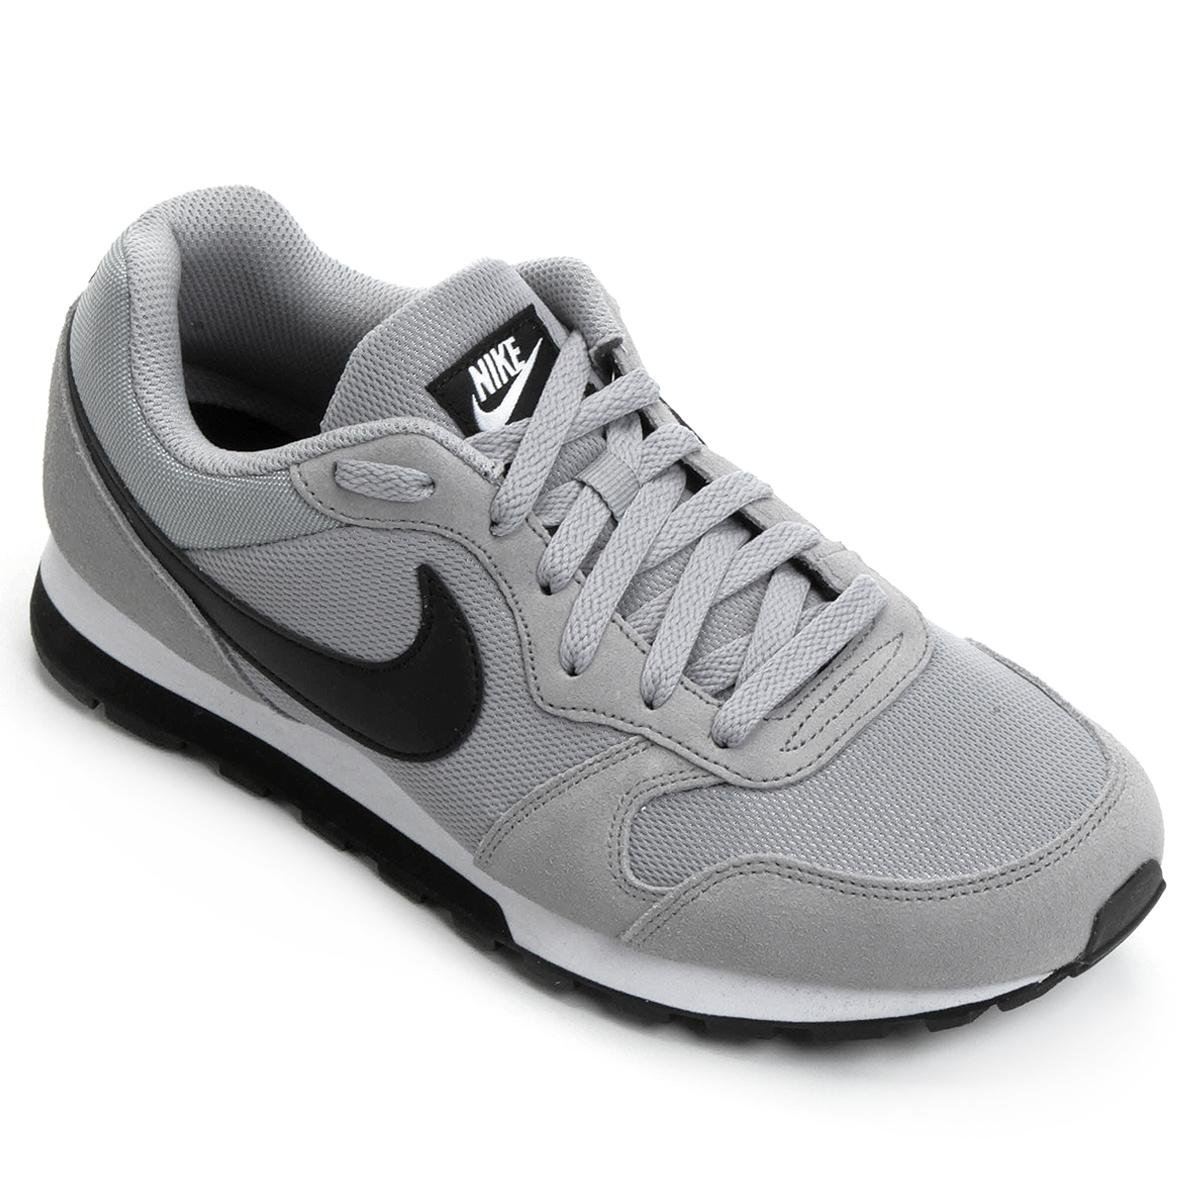 finest selection ed442 4c8b9 Tênis Nike Md Runner 2 Masculino - Cinza e Preto   Loja do Inter